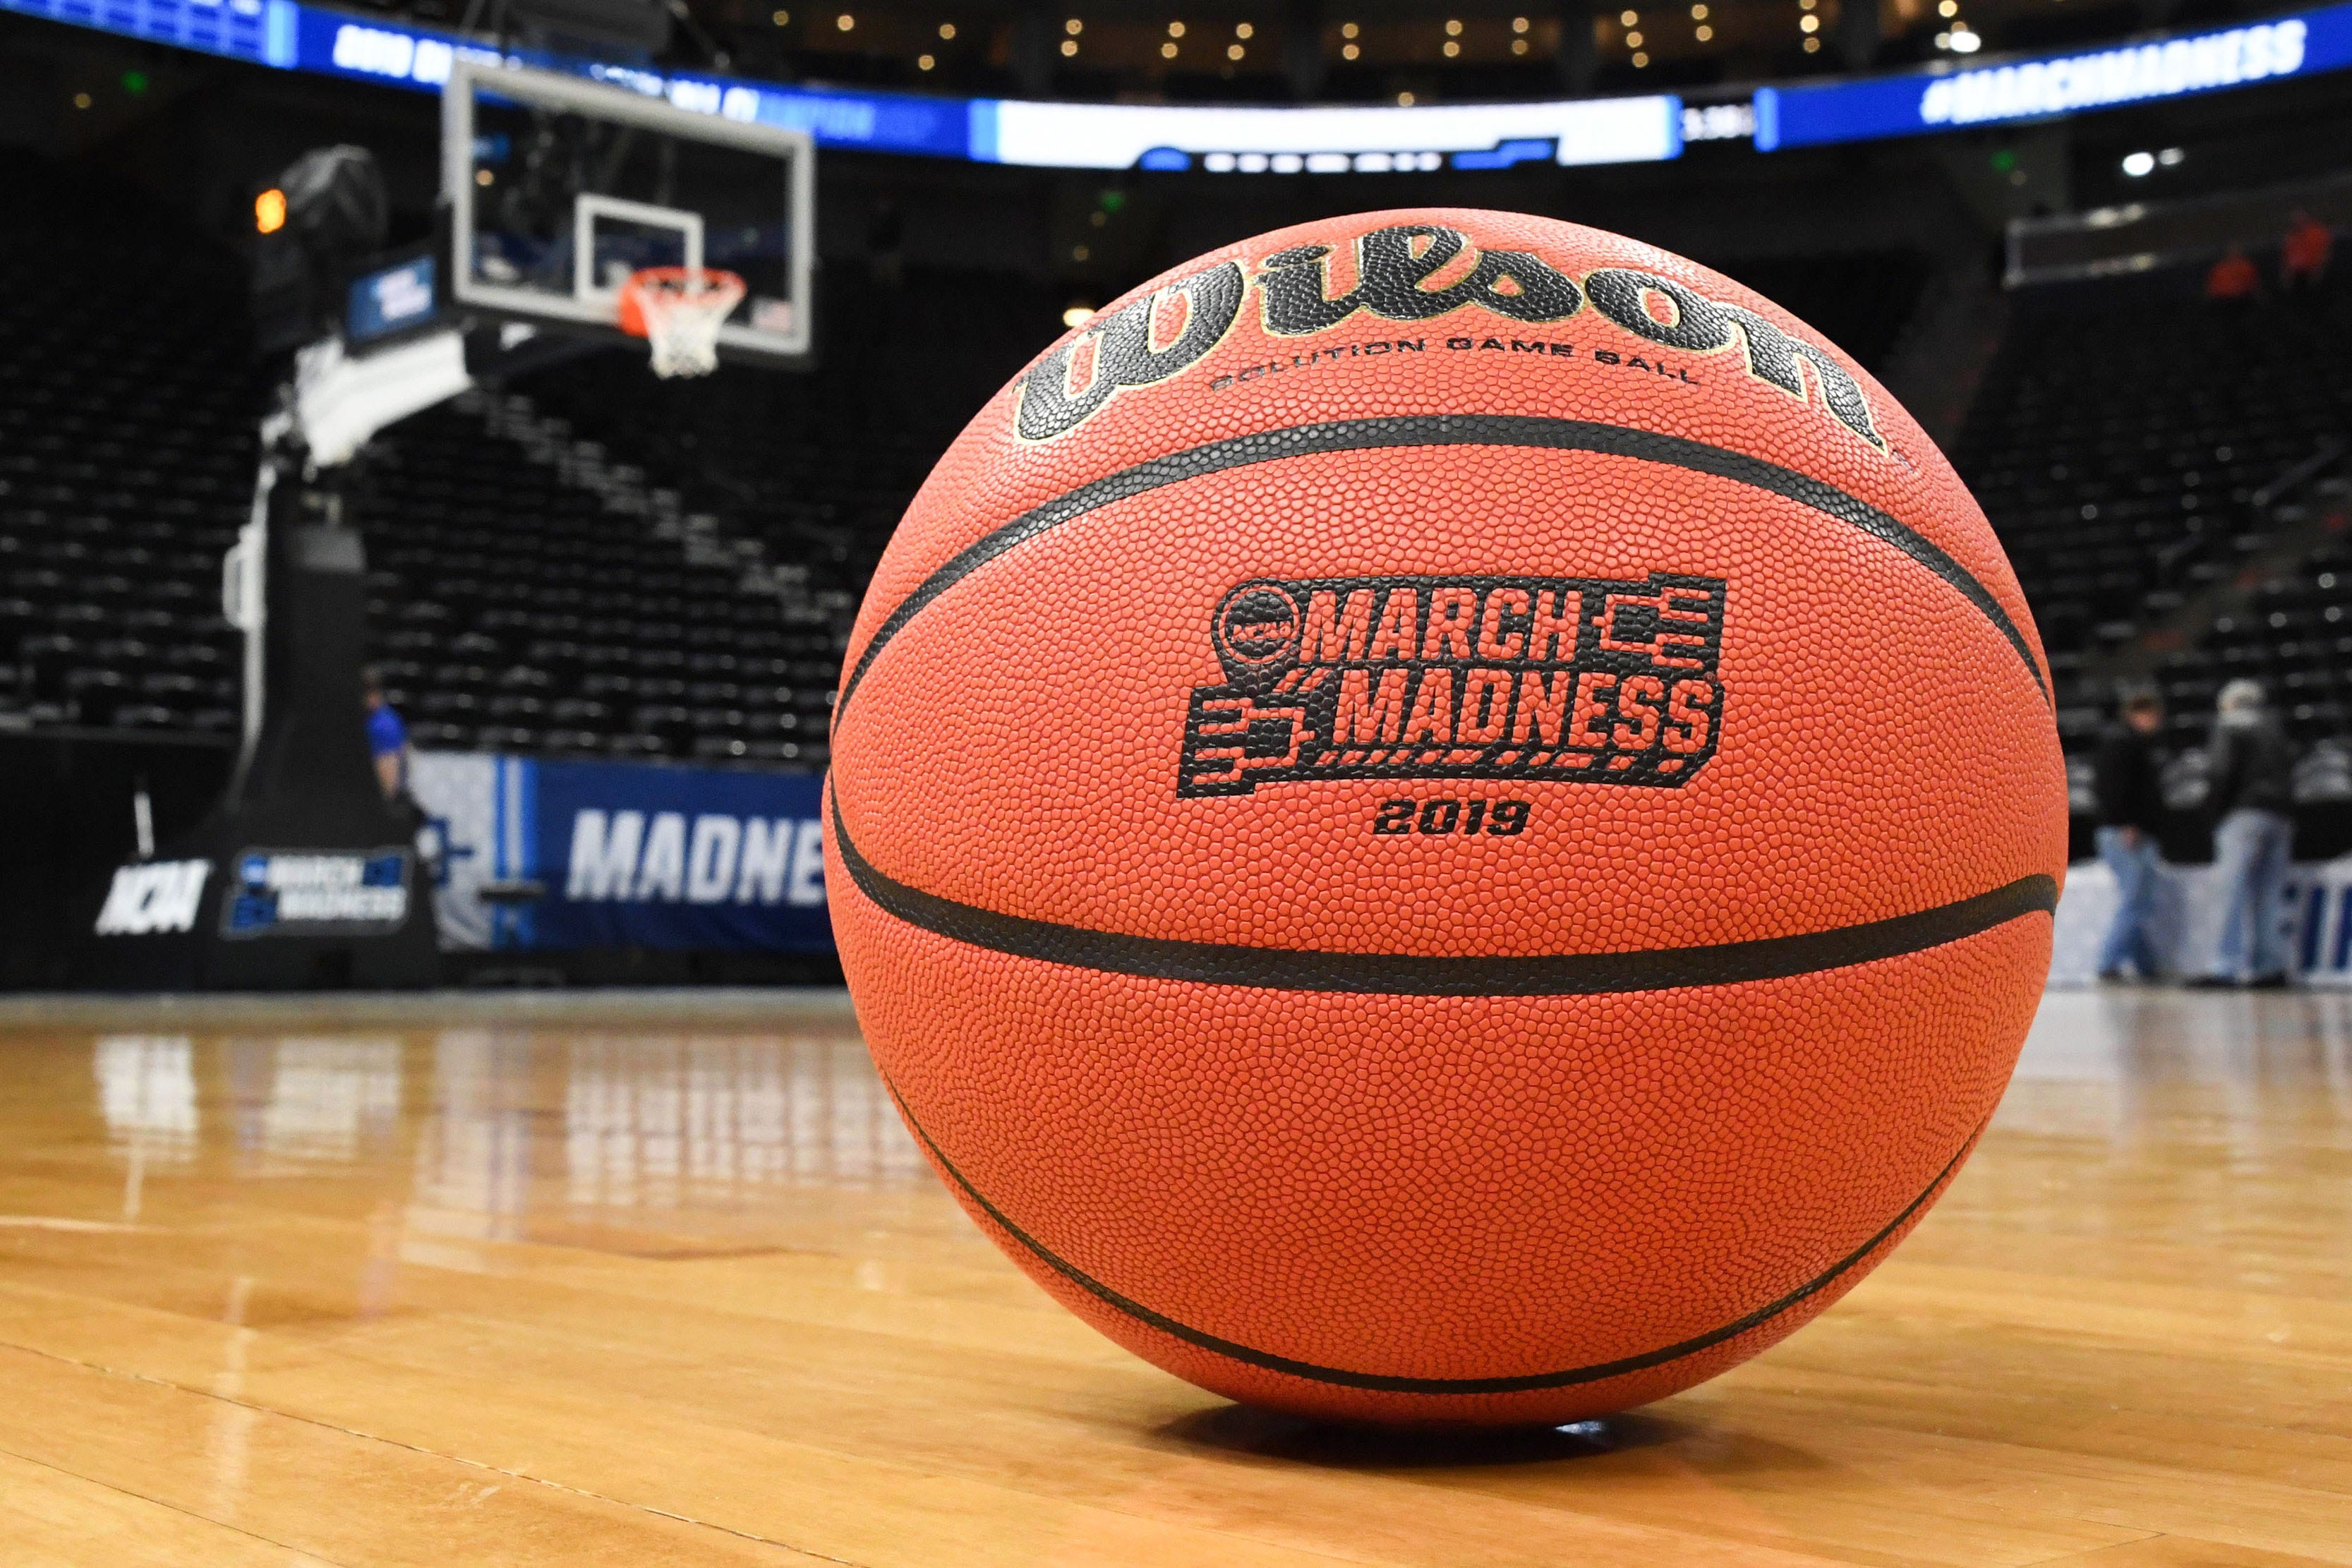 There is only one perfect NCAA tournament bracket left entering Sweet 16